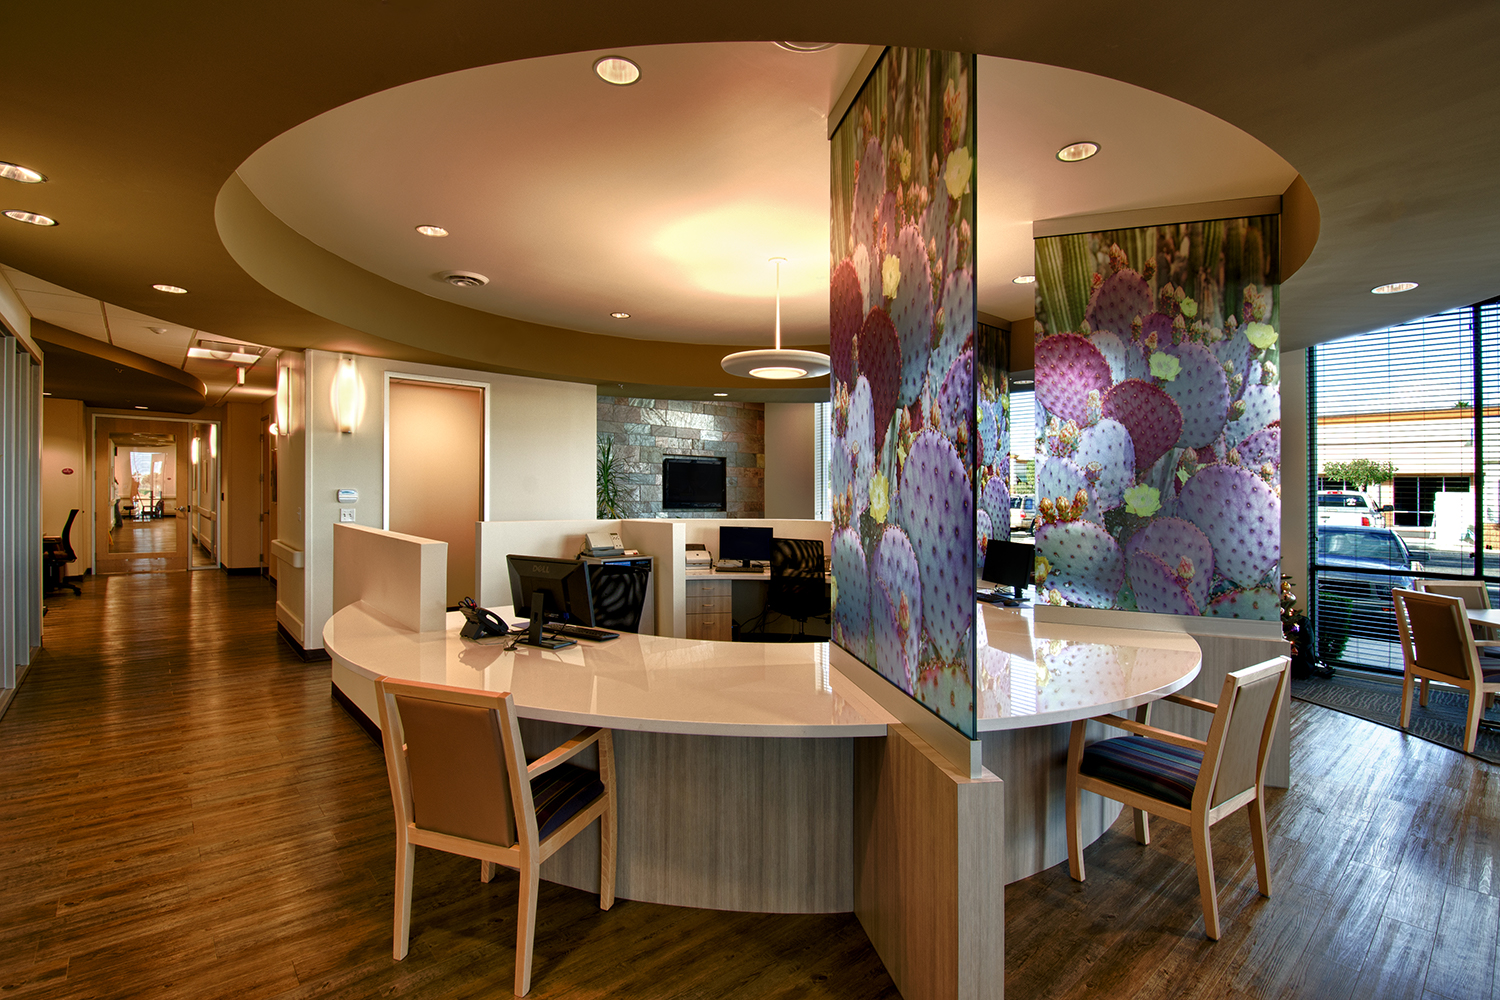 Aries pendant in a hospital lighting design above a circular, central nurses station with colorful dividing glass.